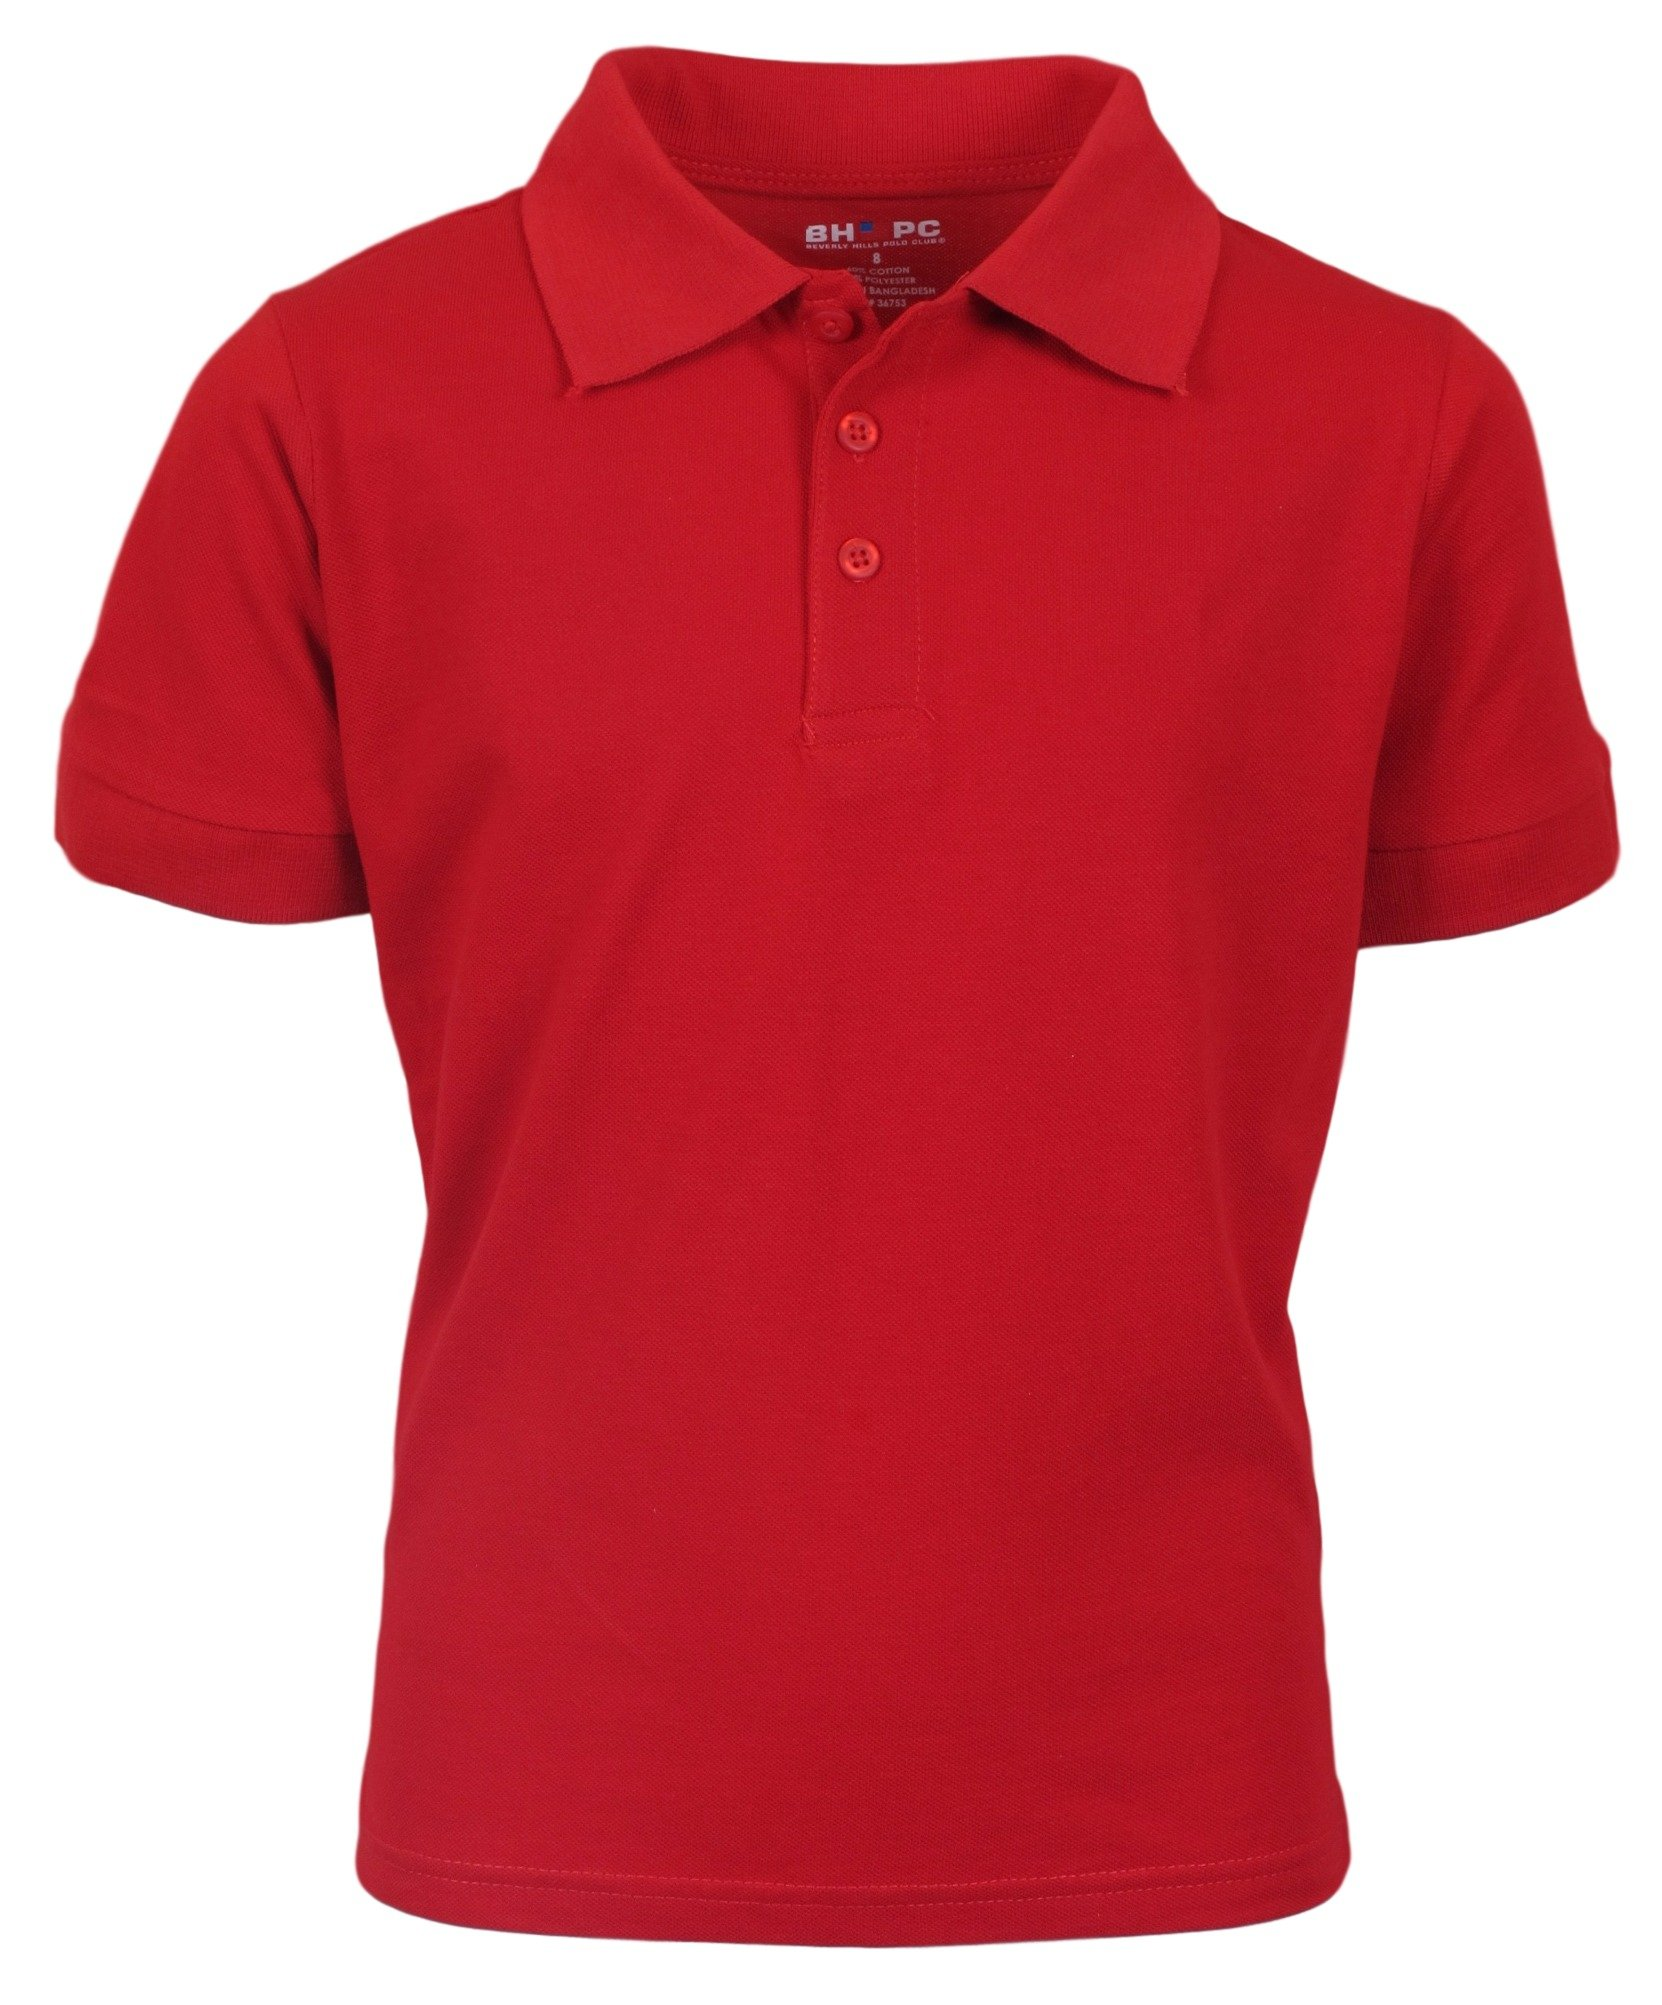 Beverly Hills Polo Club 3 Pack of Boys' Short Sleeve Pique Uniform Polo Shirts, Size 16, Red by Beverly Hills Polo Club (Image #2)